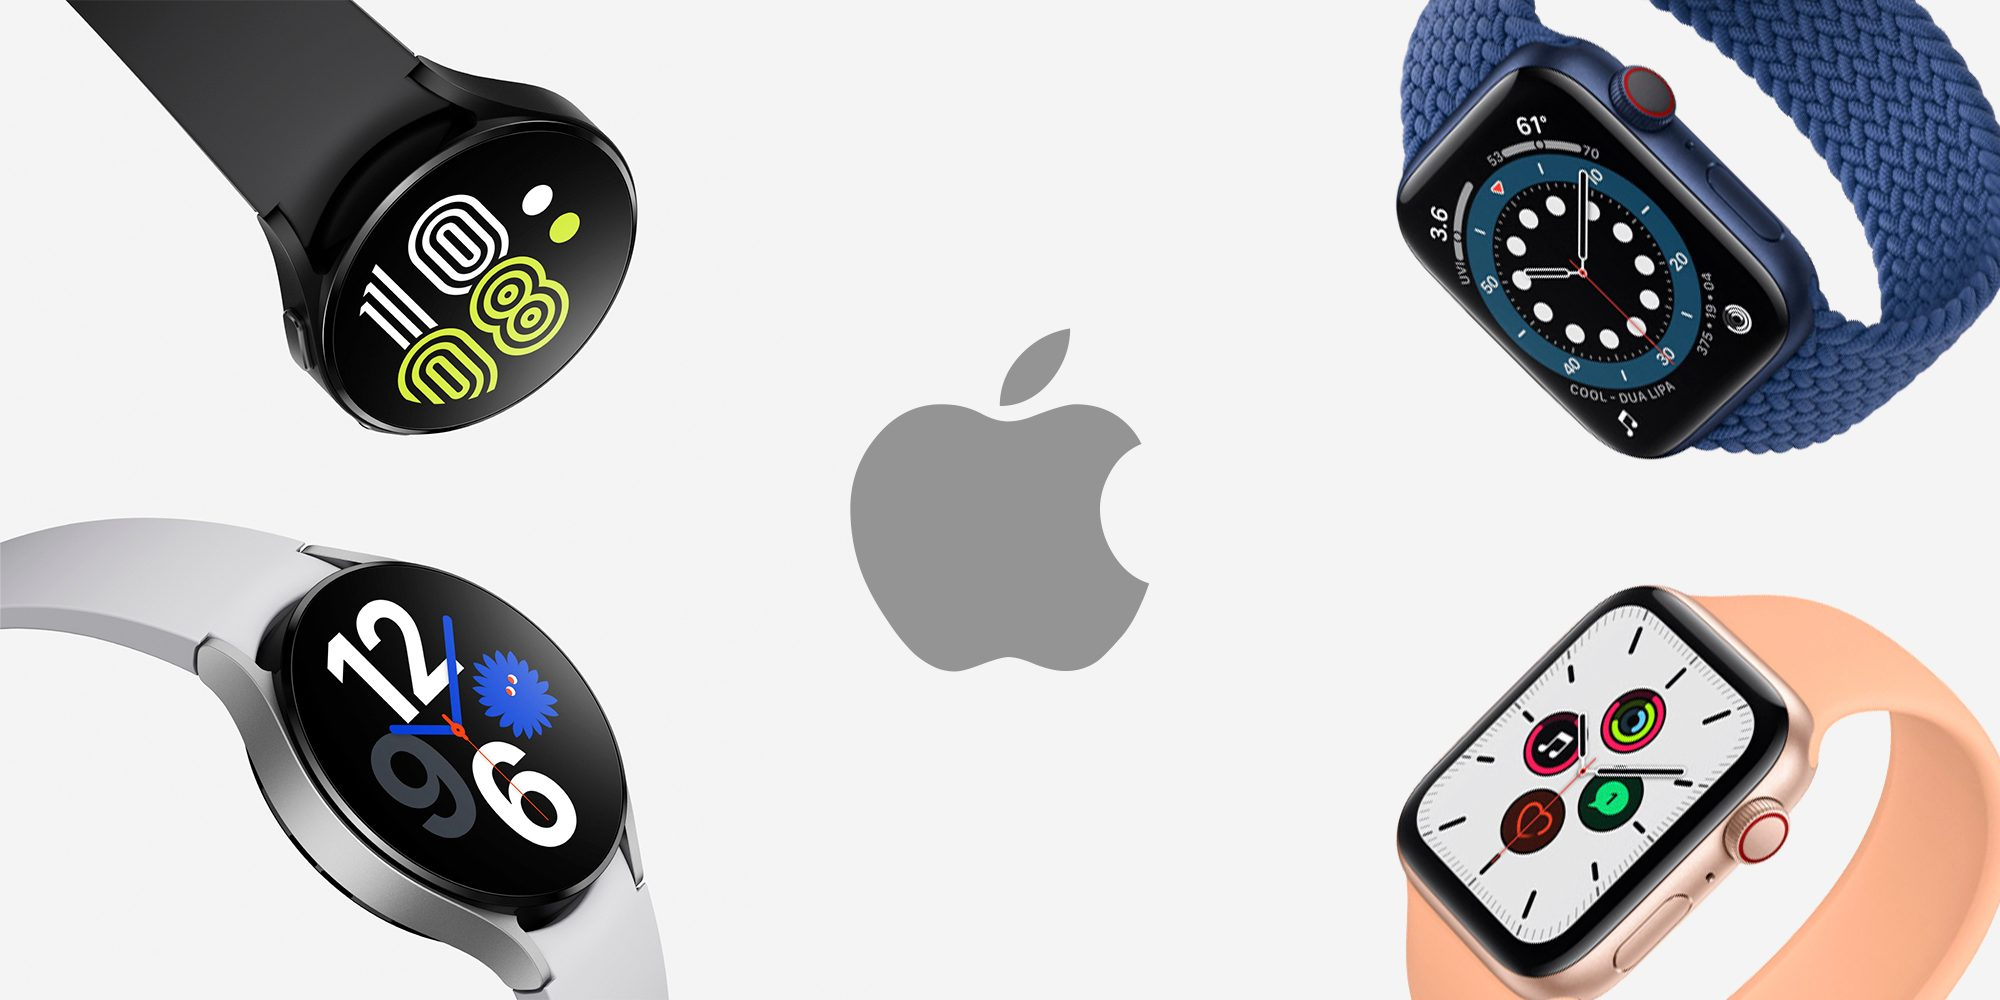 Apple Watch Now Has Real Competition from Samsung and Google